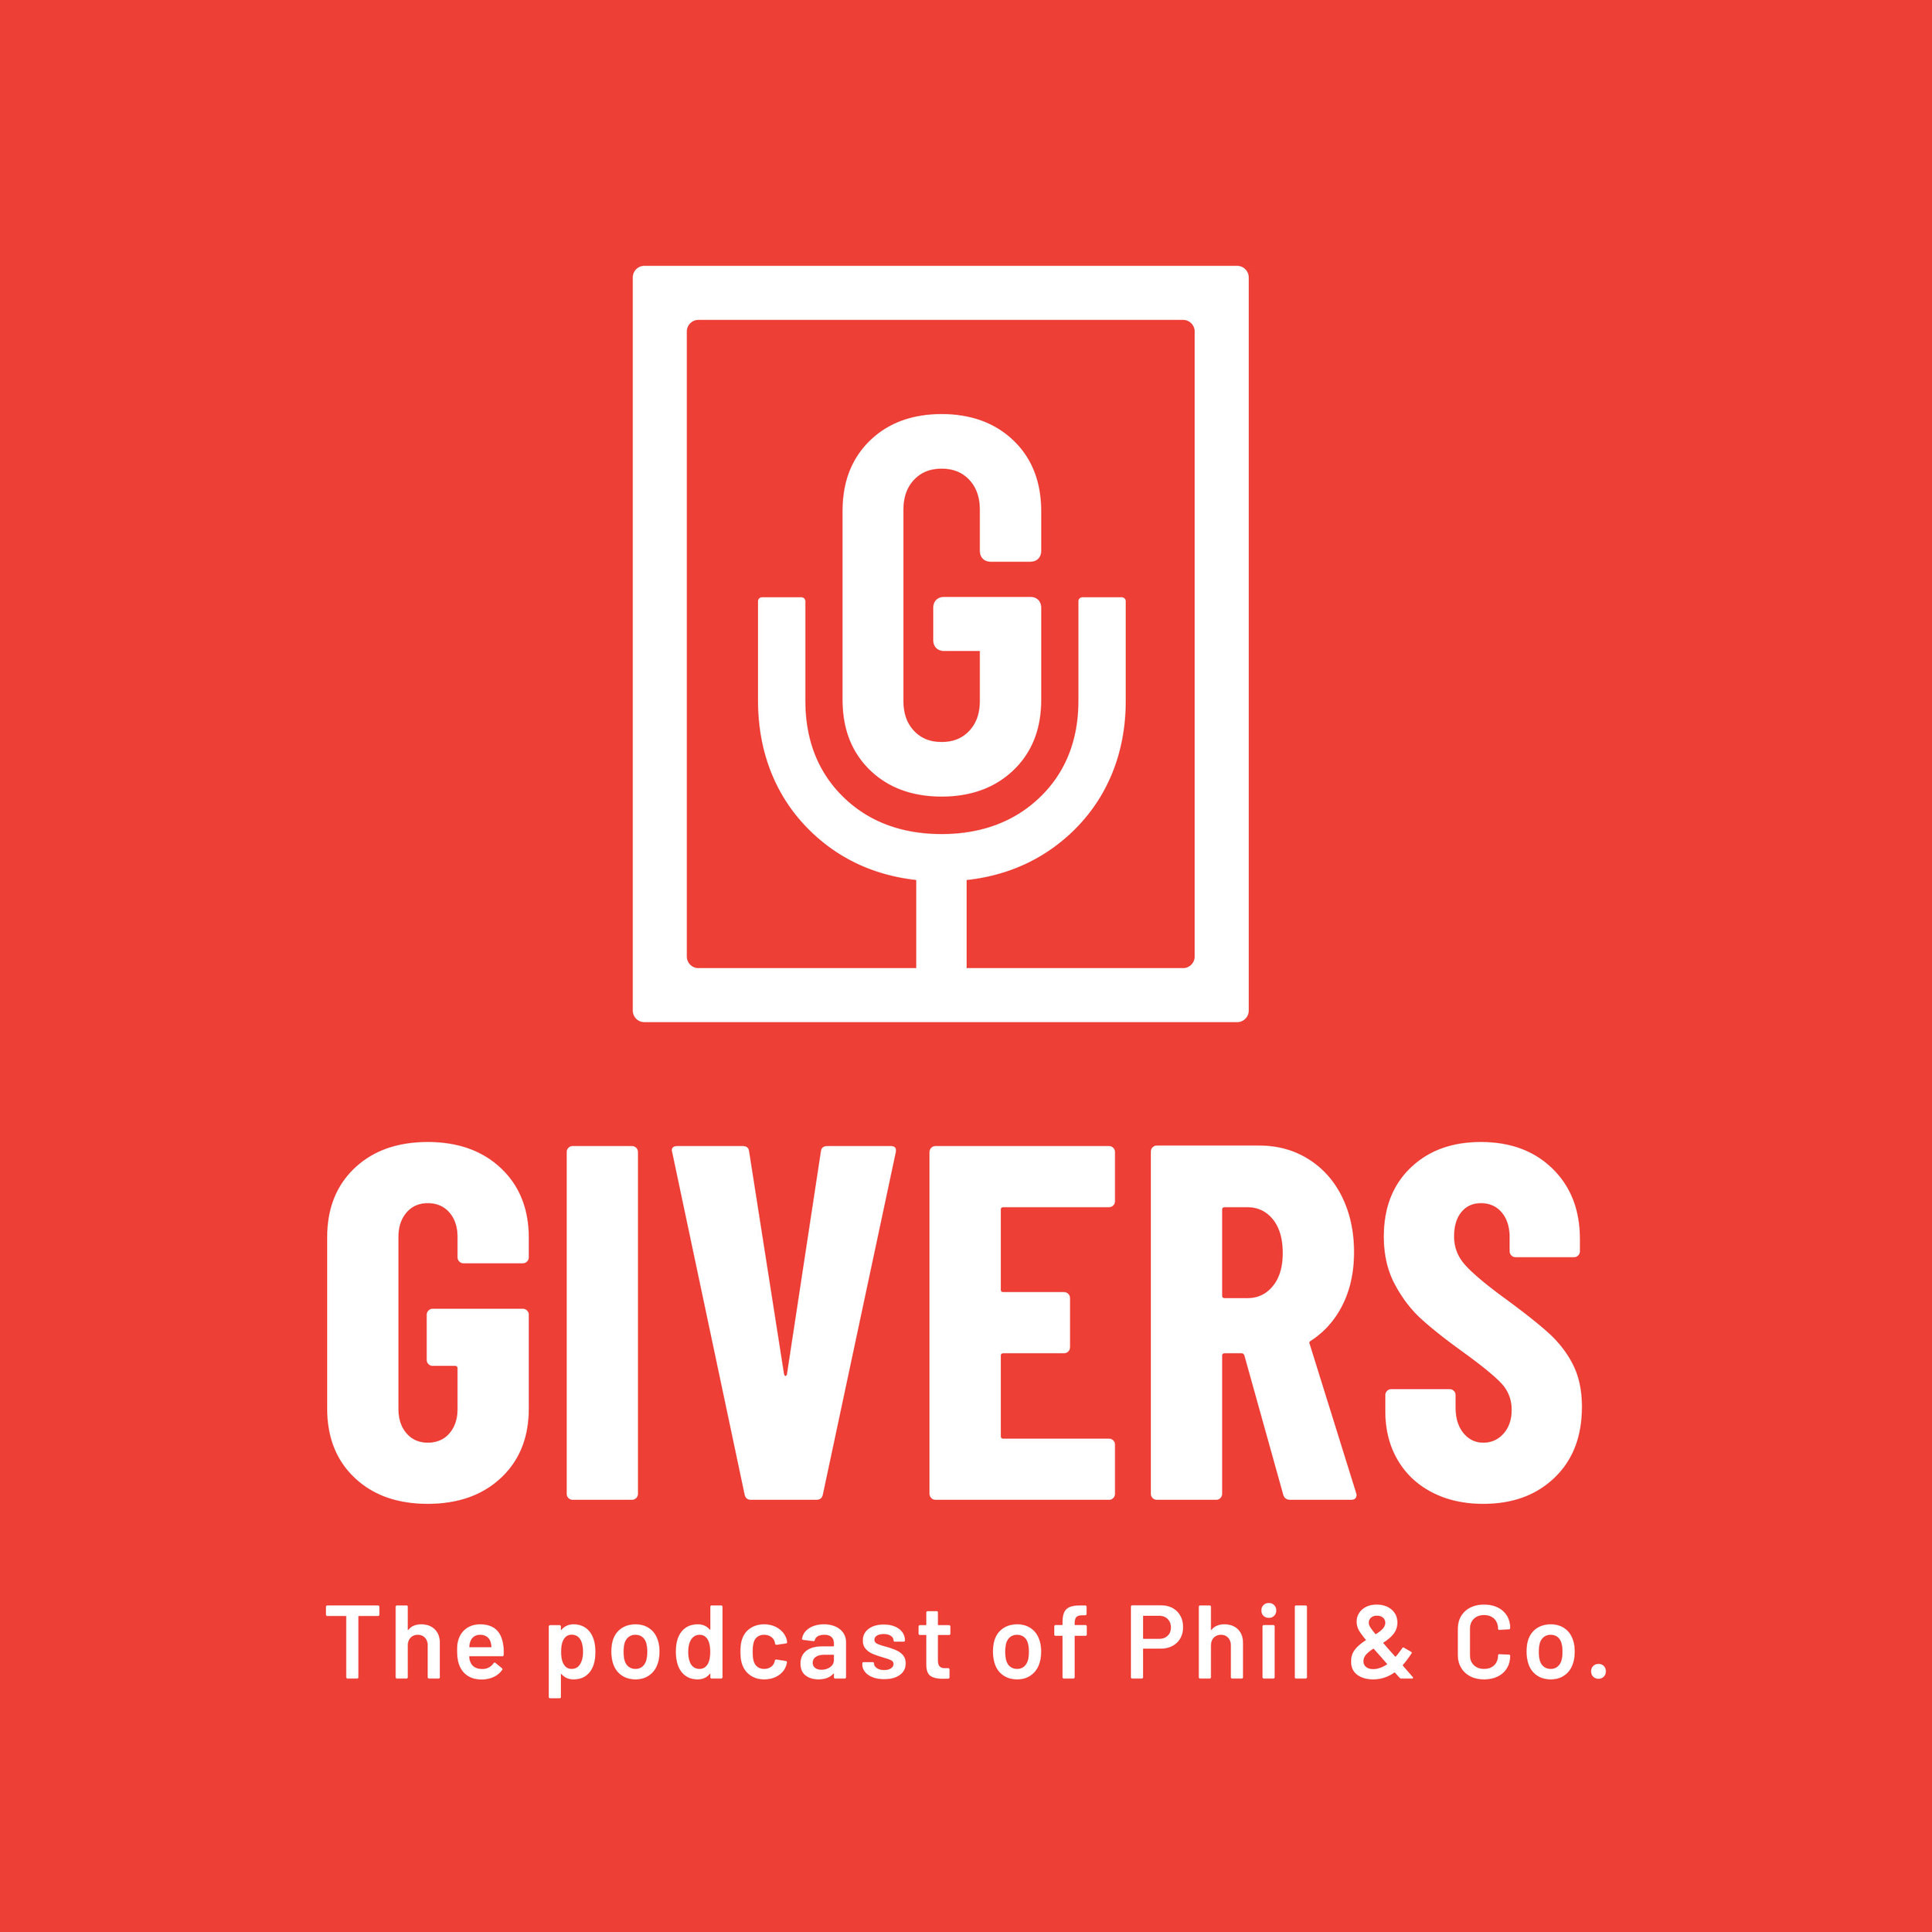 givers-logo-3000x3000.jpg